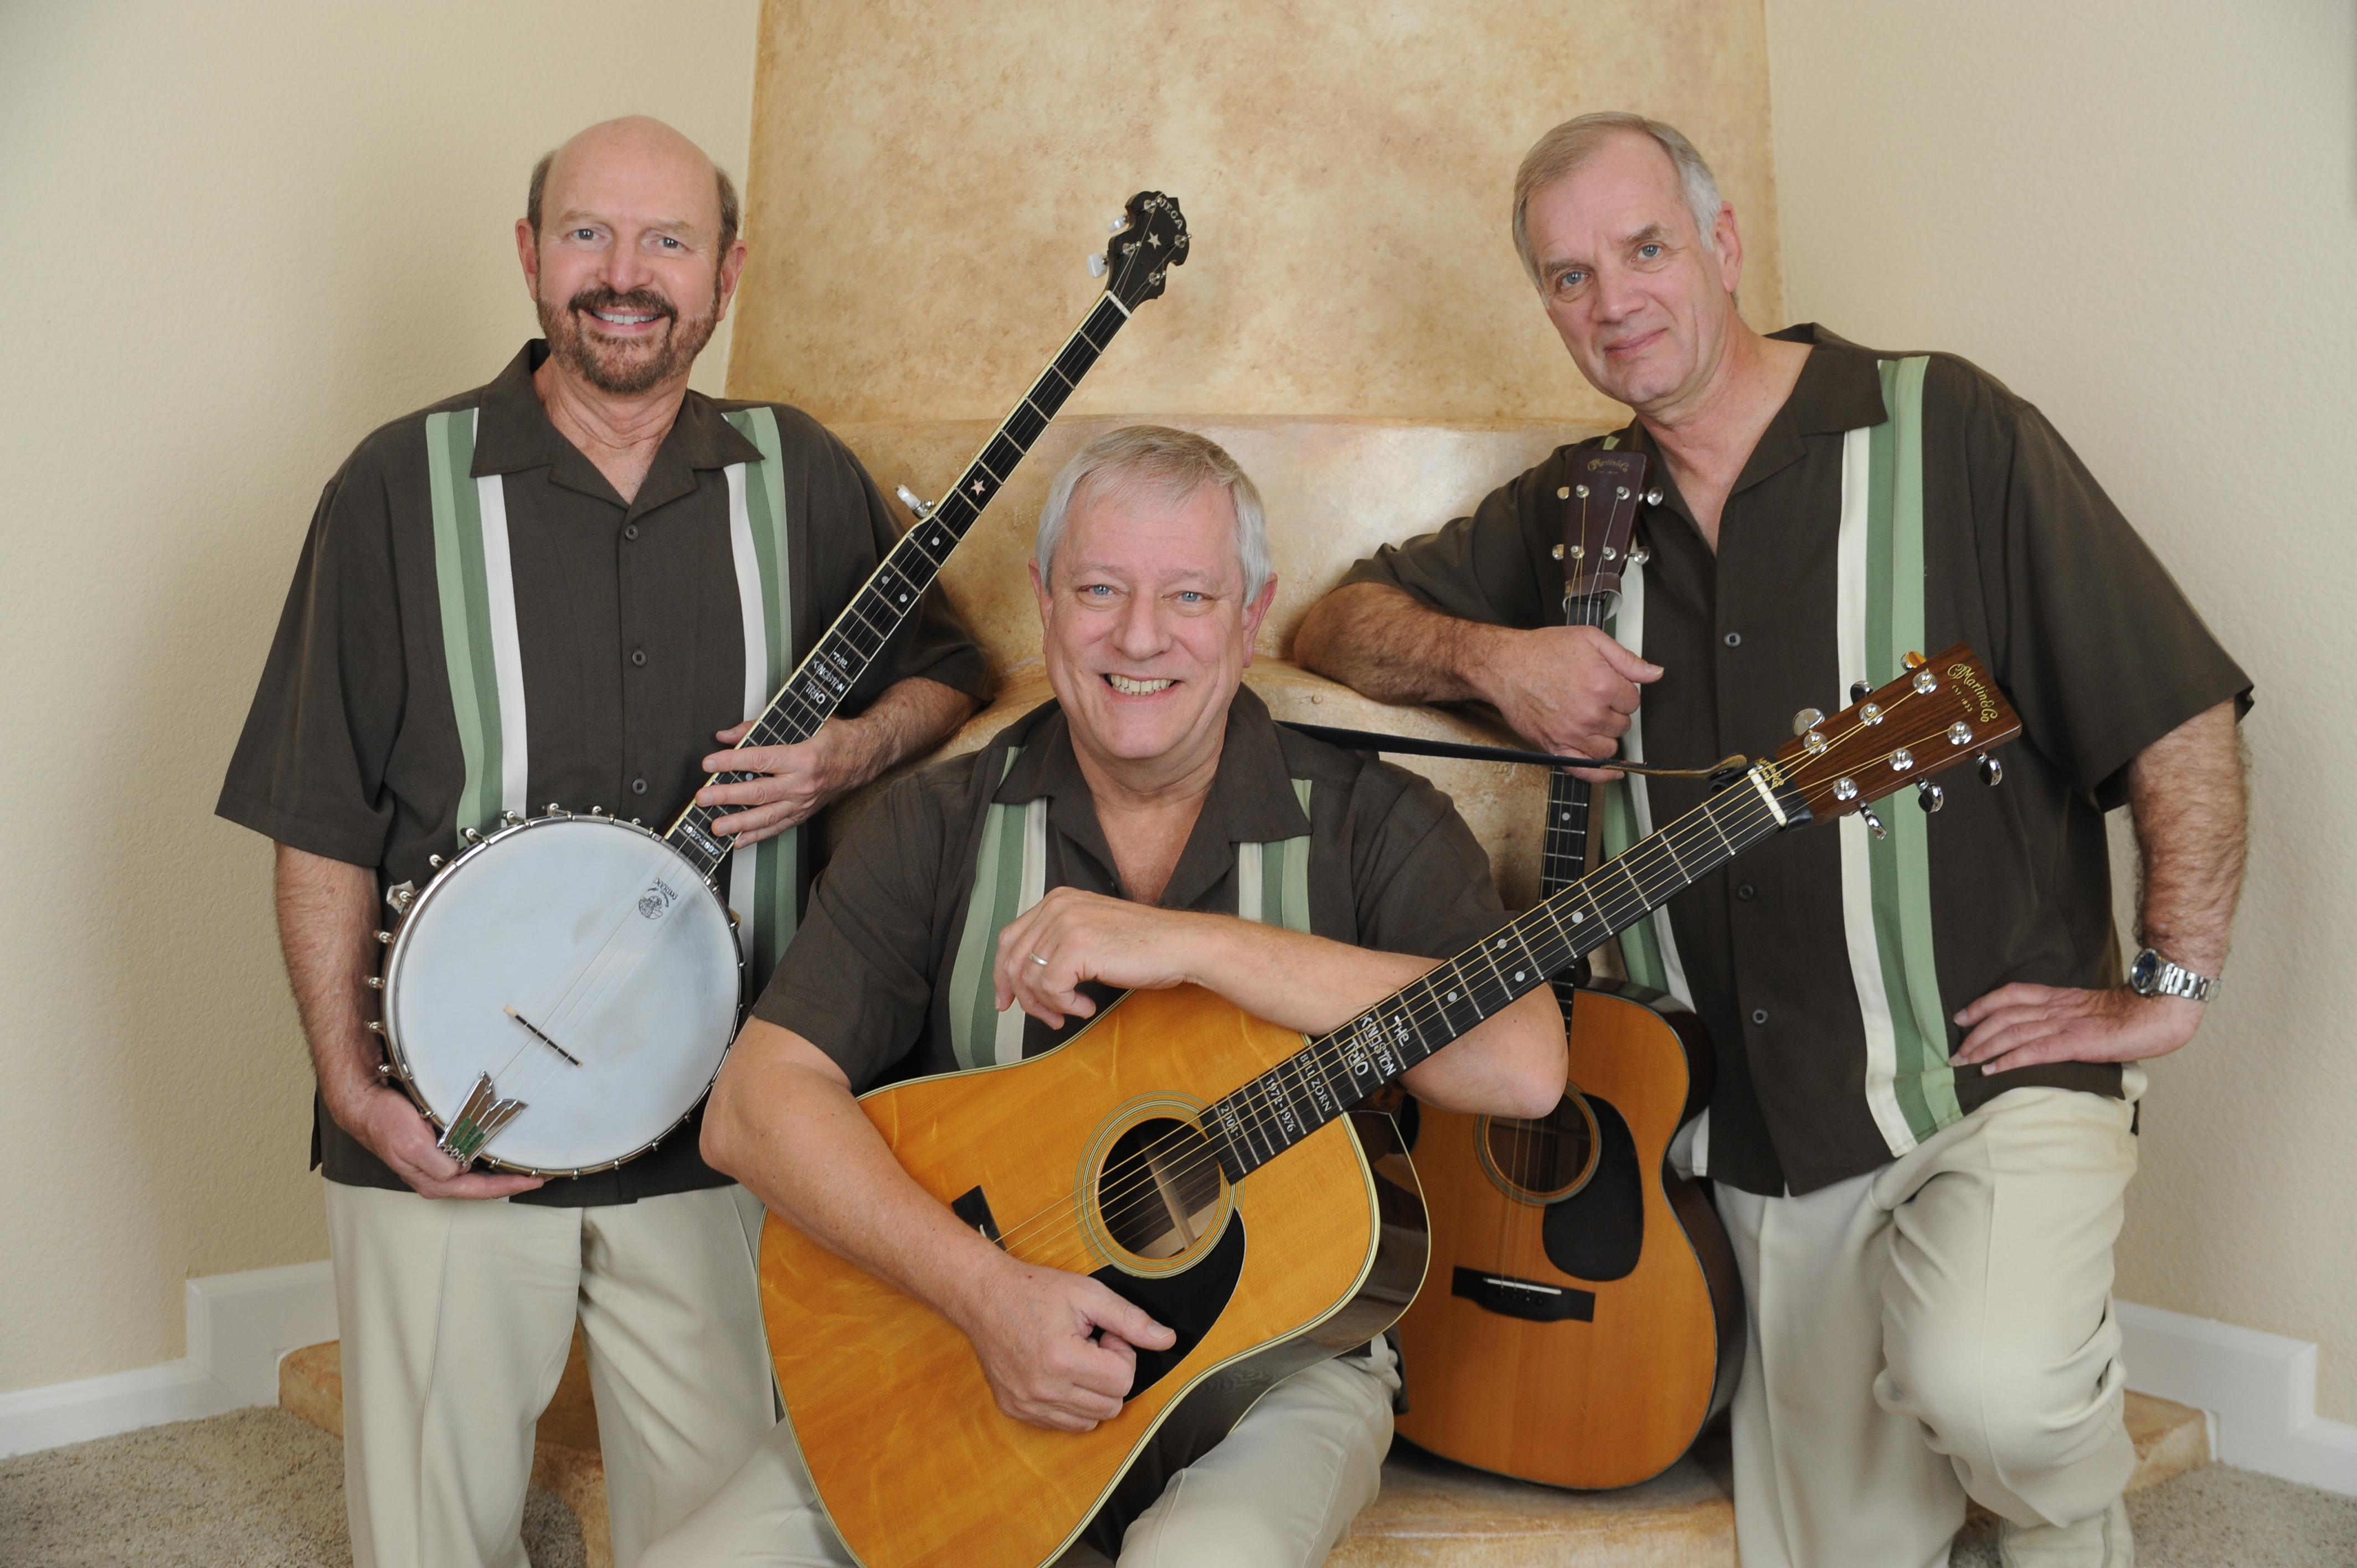 The kingston trio tickets the avalon hollywood on june for The kingston